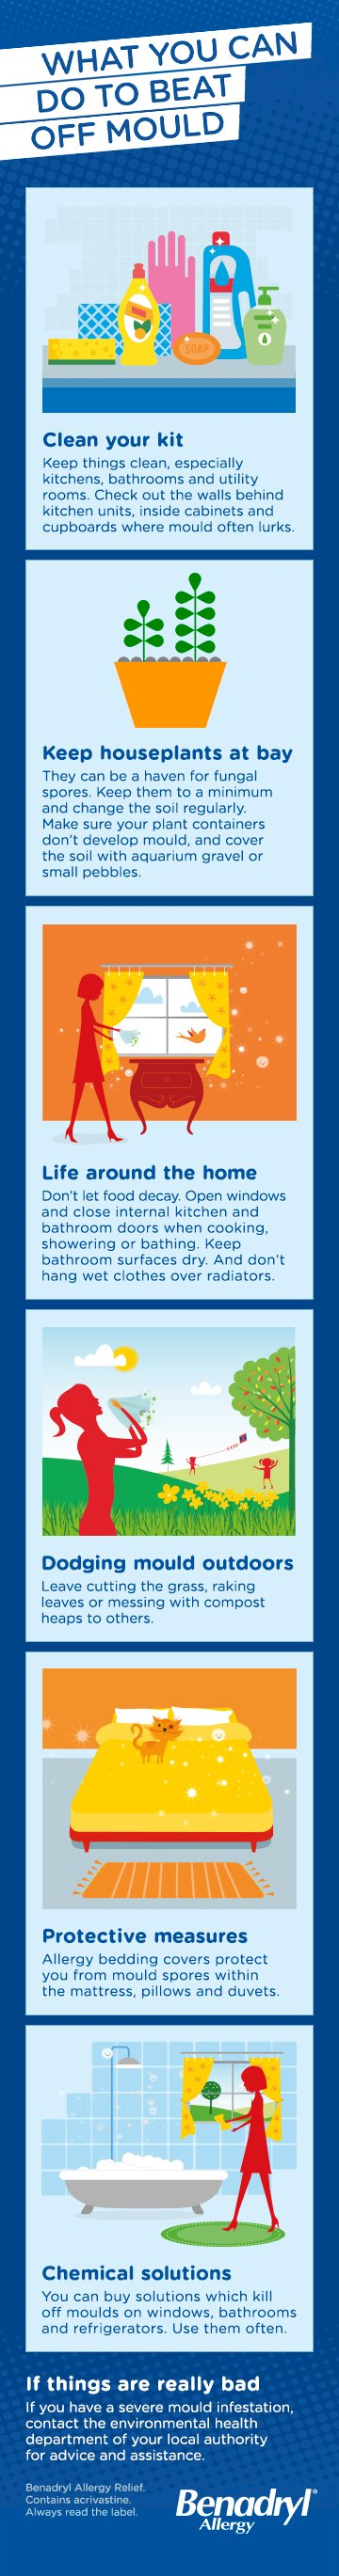 Mould Infographic